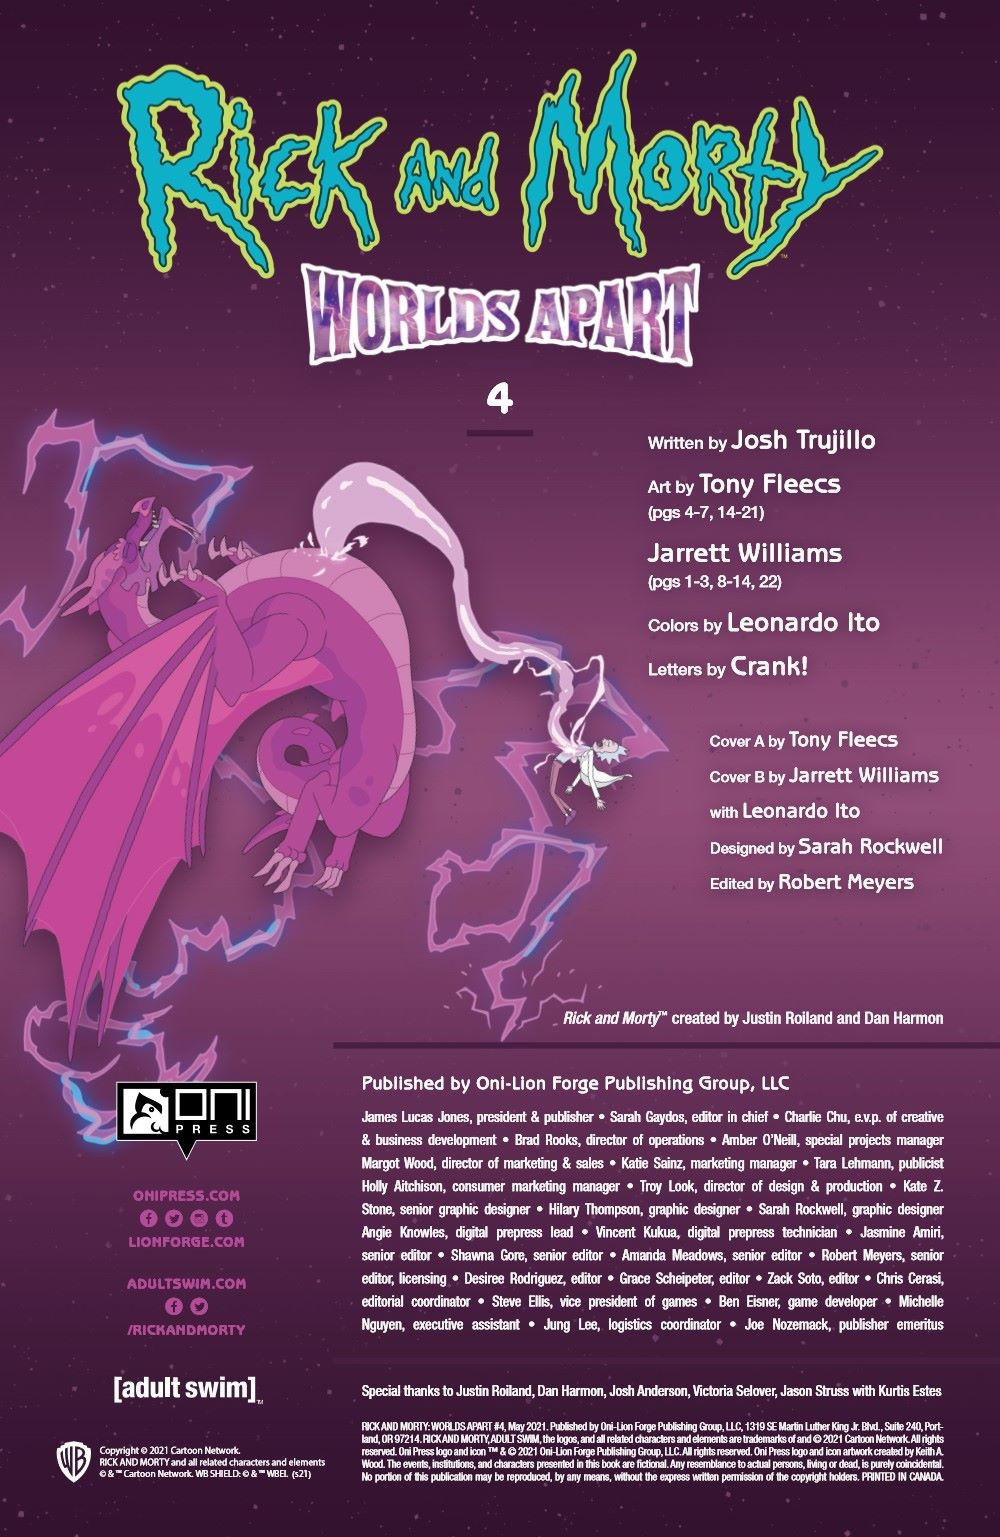 RICKMORTY-WORLDSAPART-4-REFERENCE-03 ComicList Previews: RICK AND MORTY WORLDS APART #4